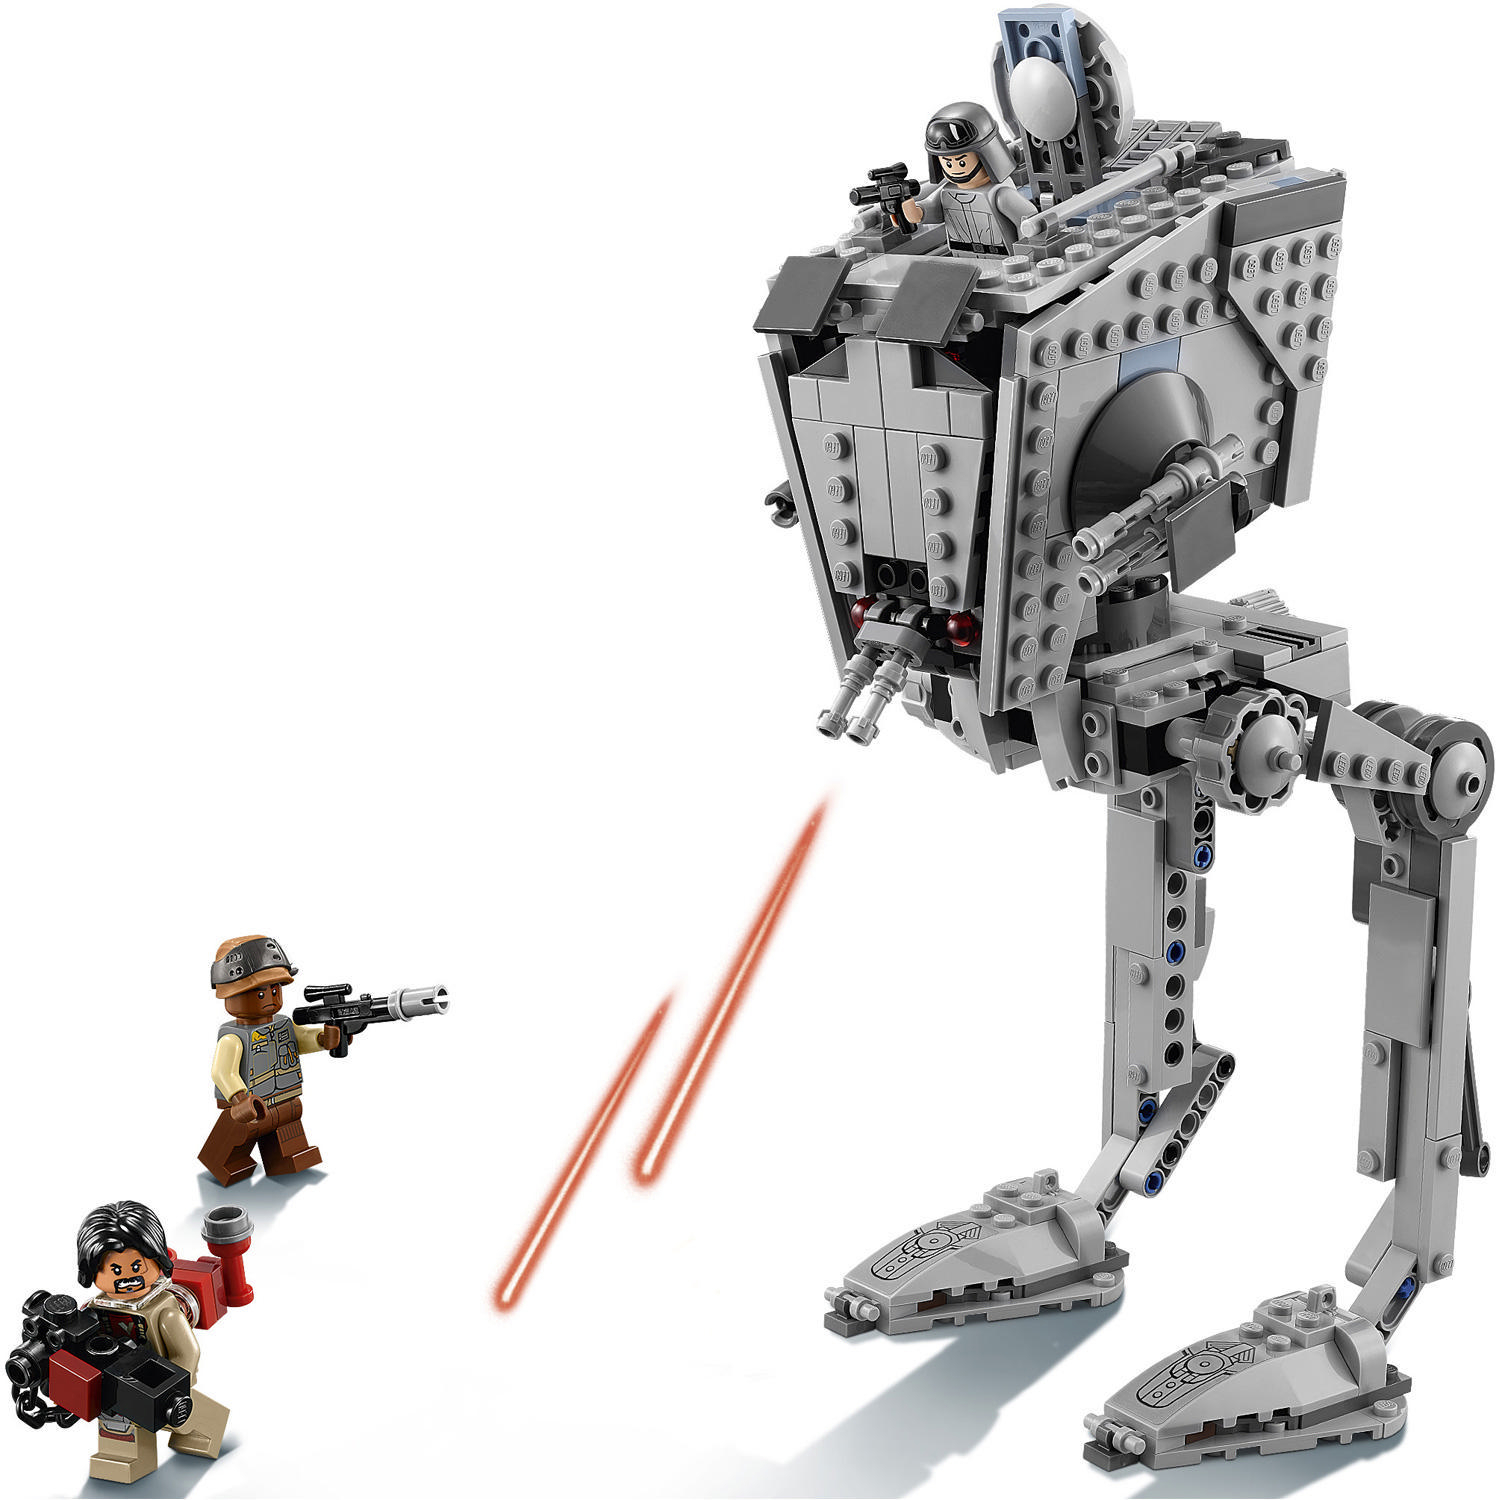 Toys Star Wars : Top hottest star wars toys and collectibles for that